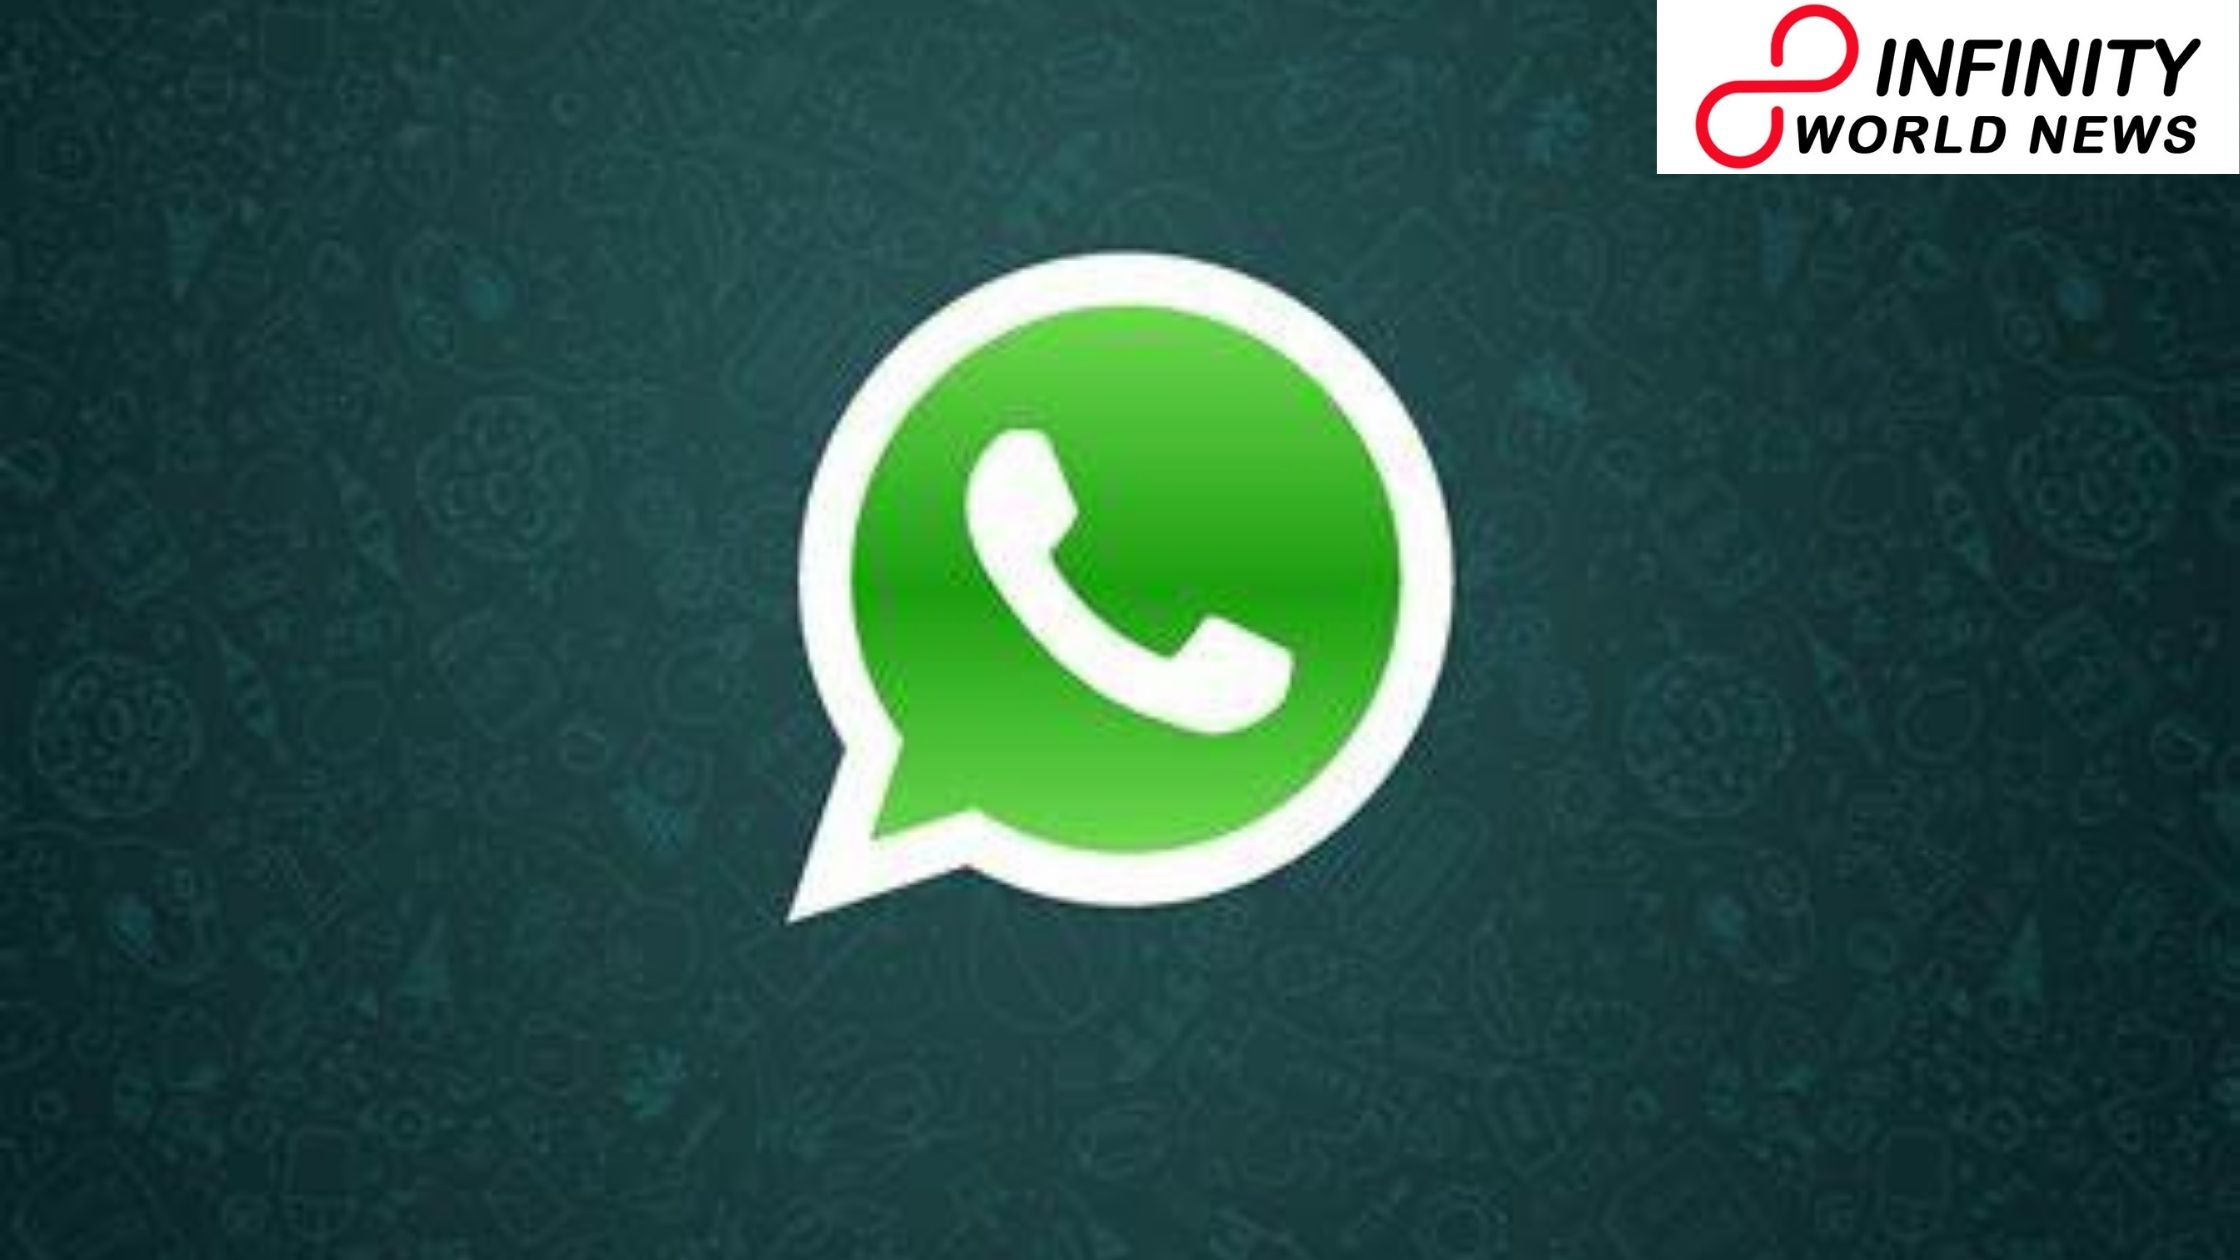 WhatsApp may before long touch 500 million clients in India despite new security strategy, claims report